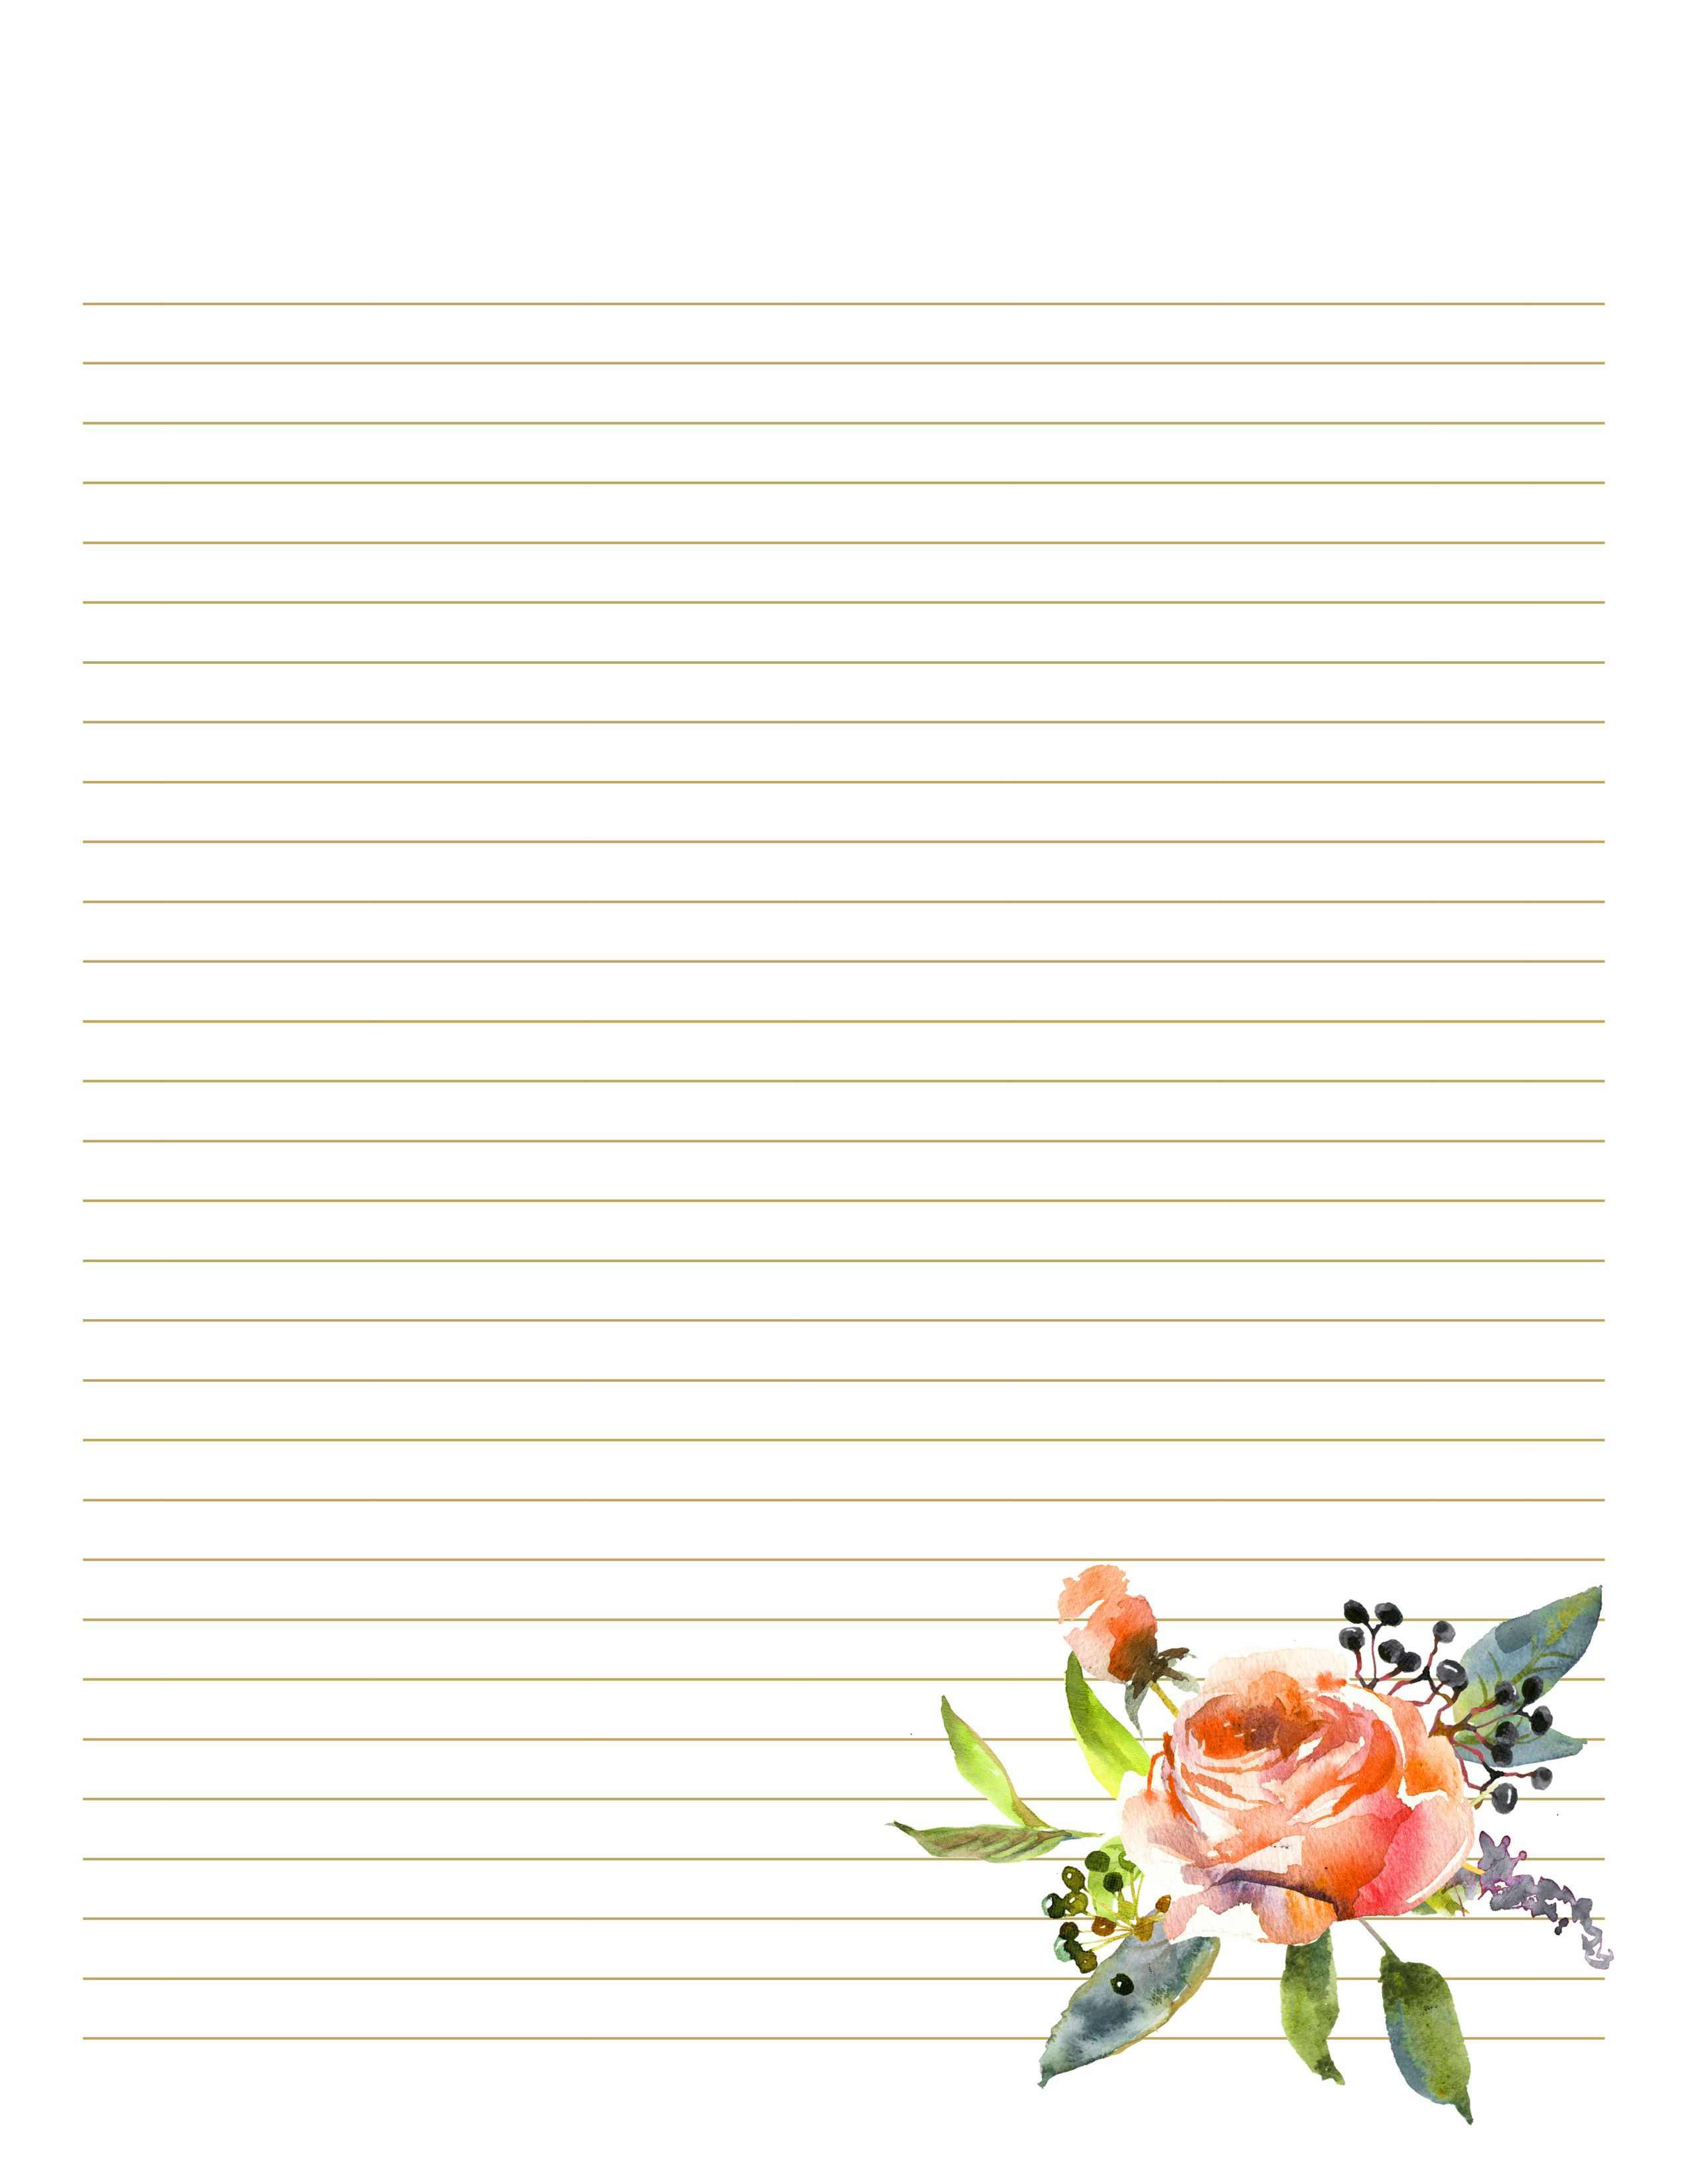 Floral Notepad Writing Paper Printable Stationery Floral Stationery Stationery Paper